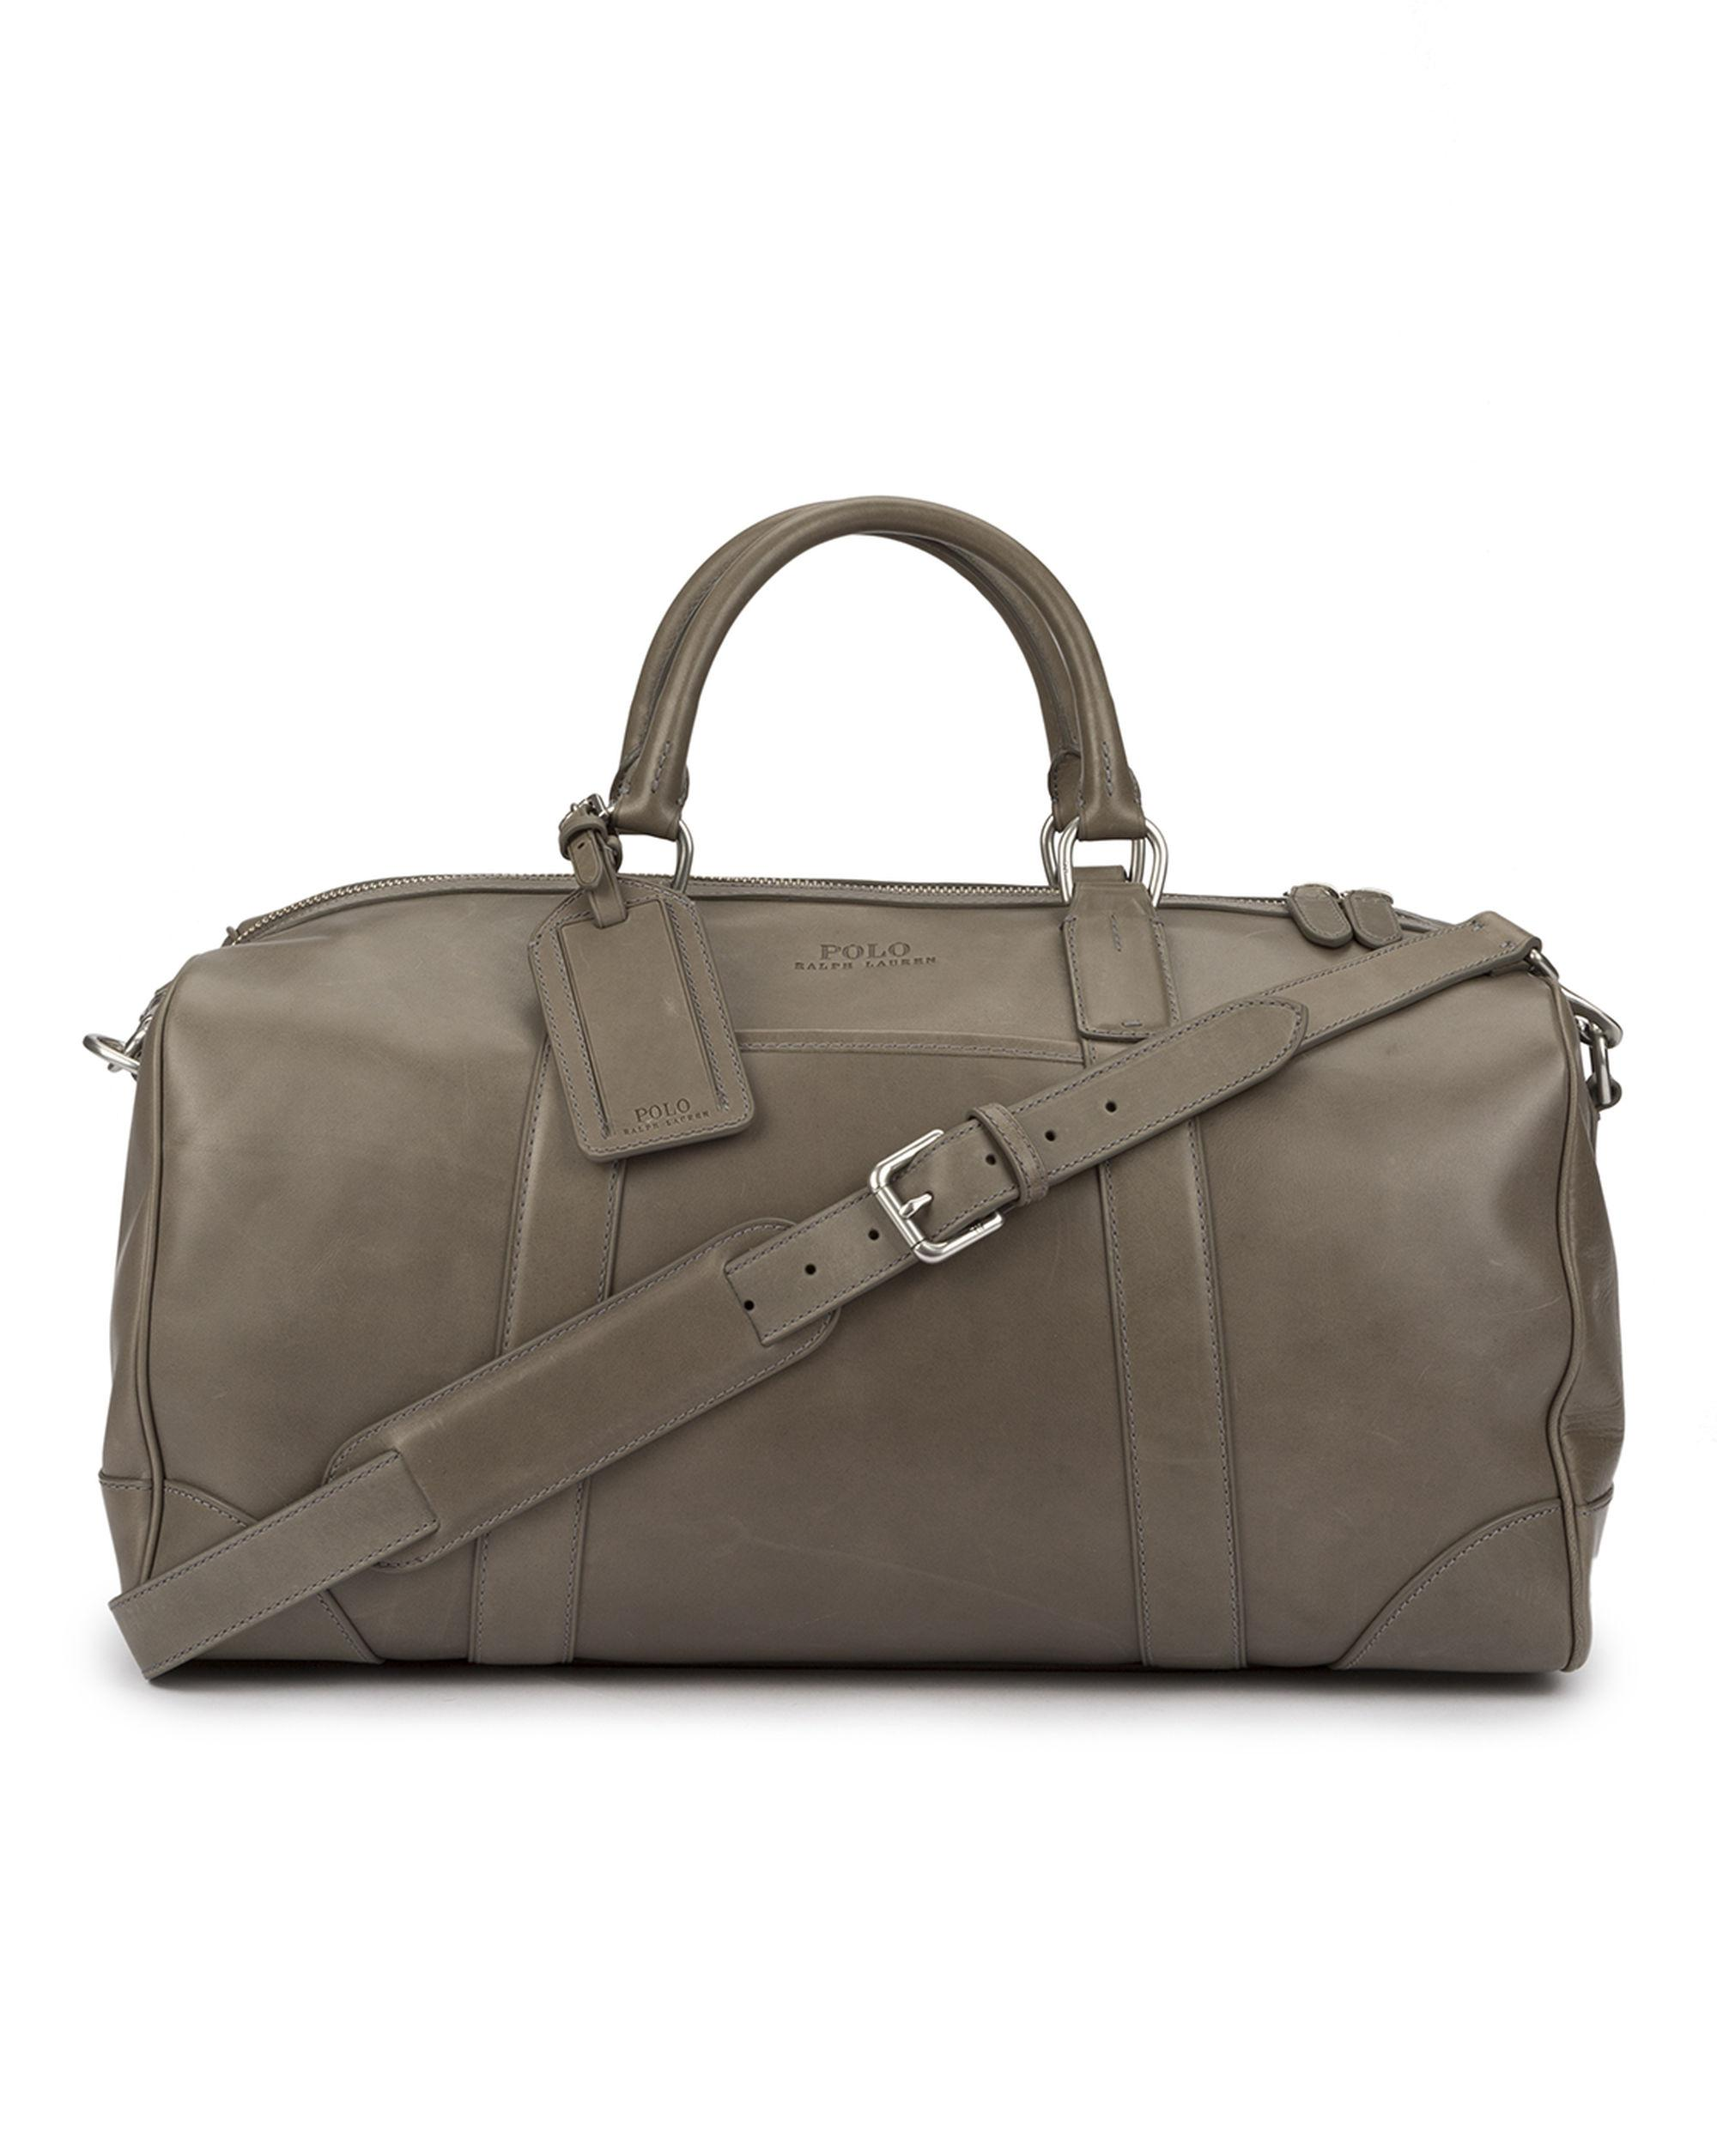 leather weekend bags for men - photo #26